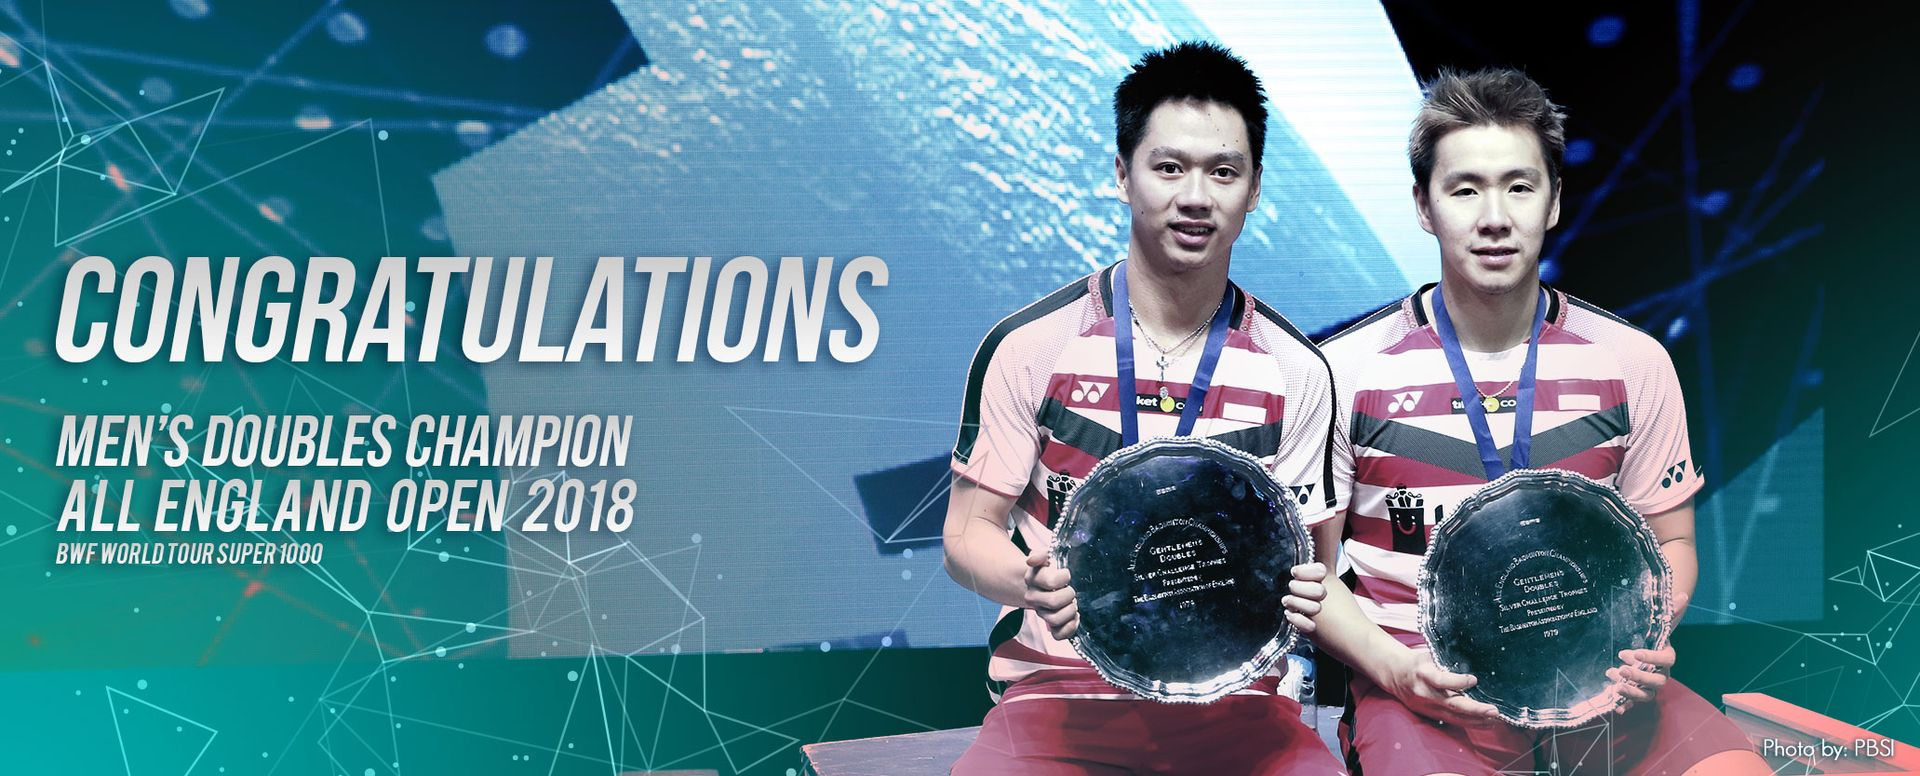 Men's Doubles Champions All England Open 2018